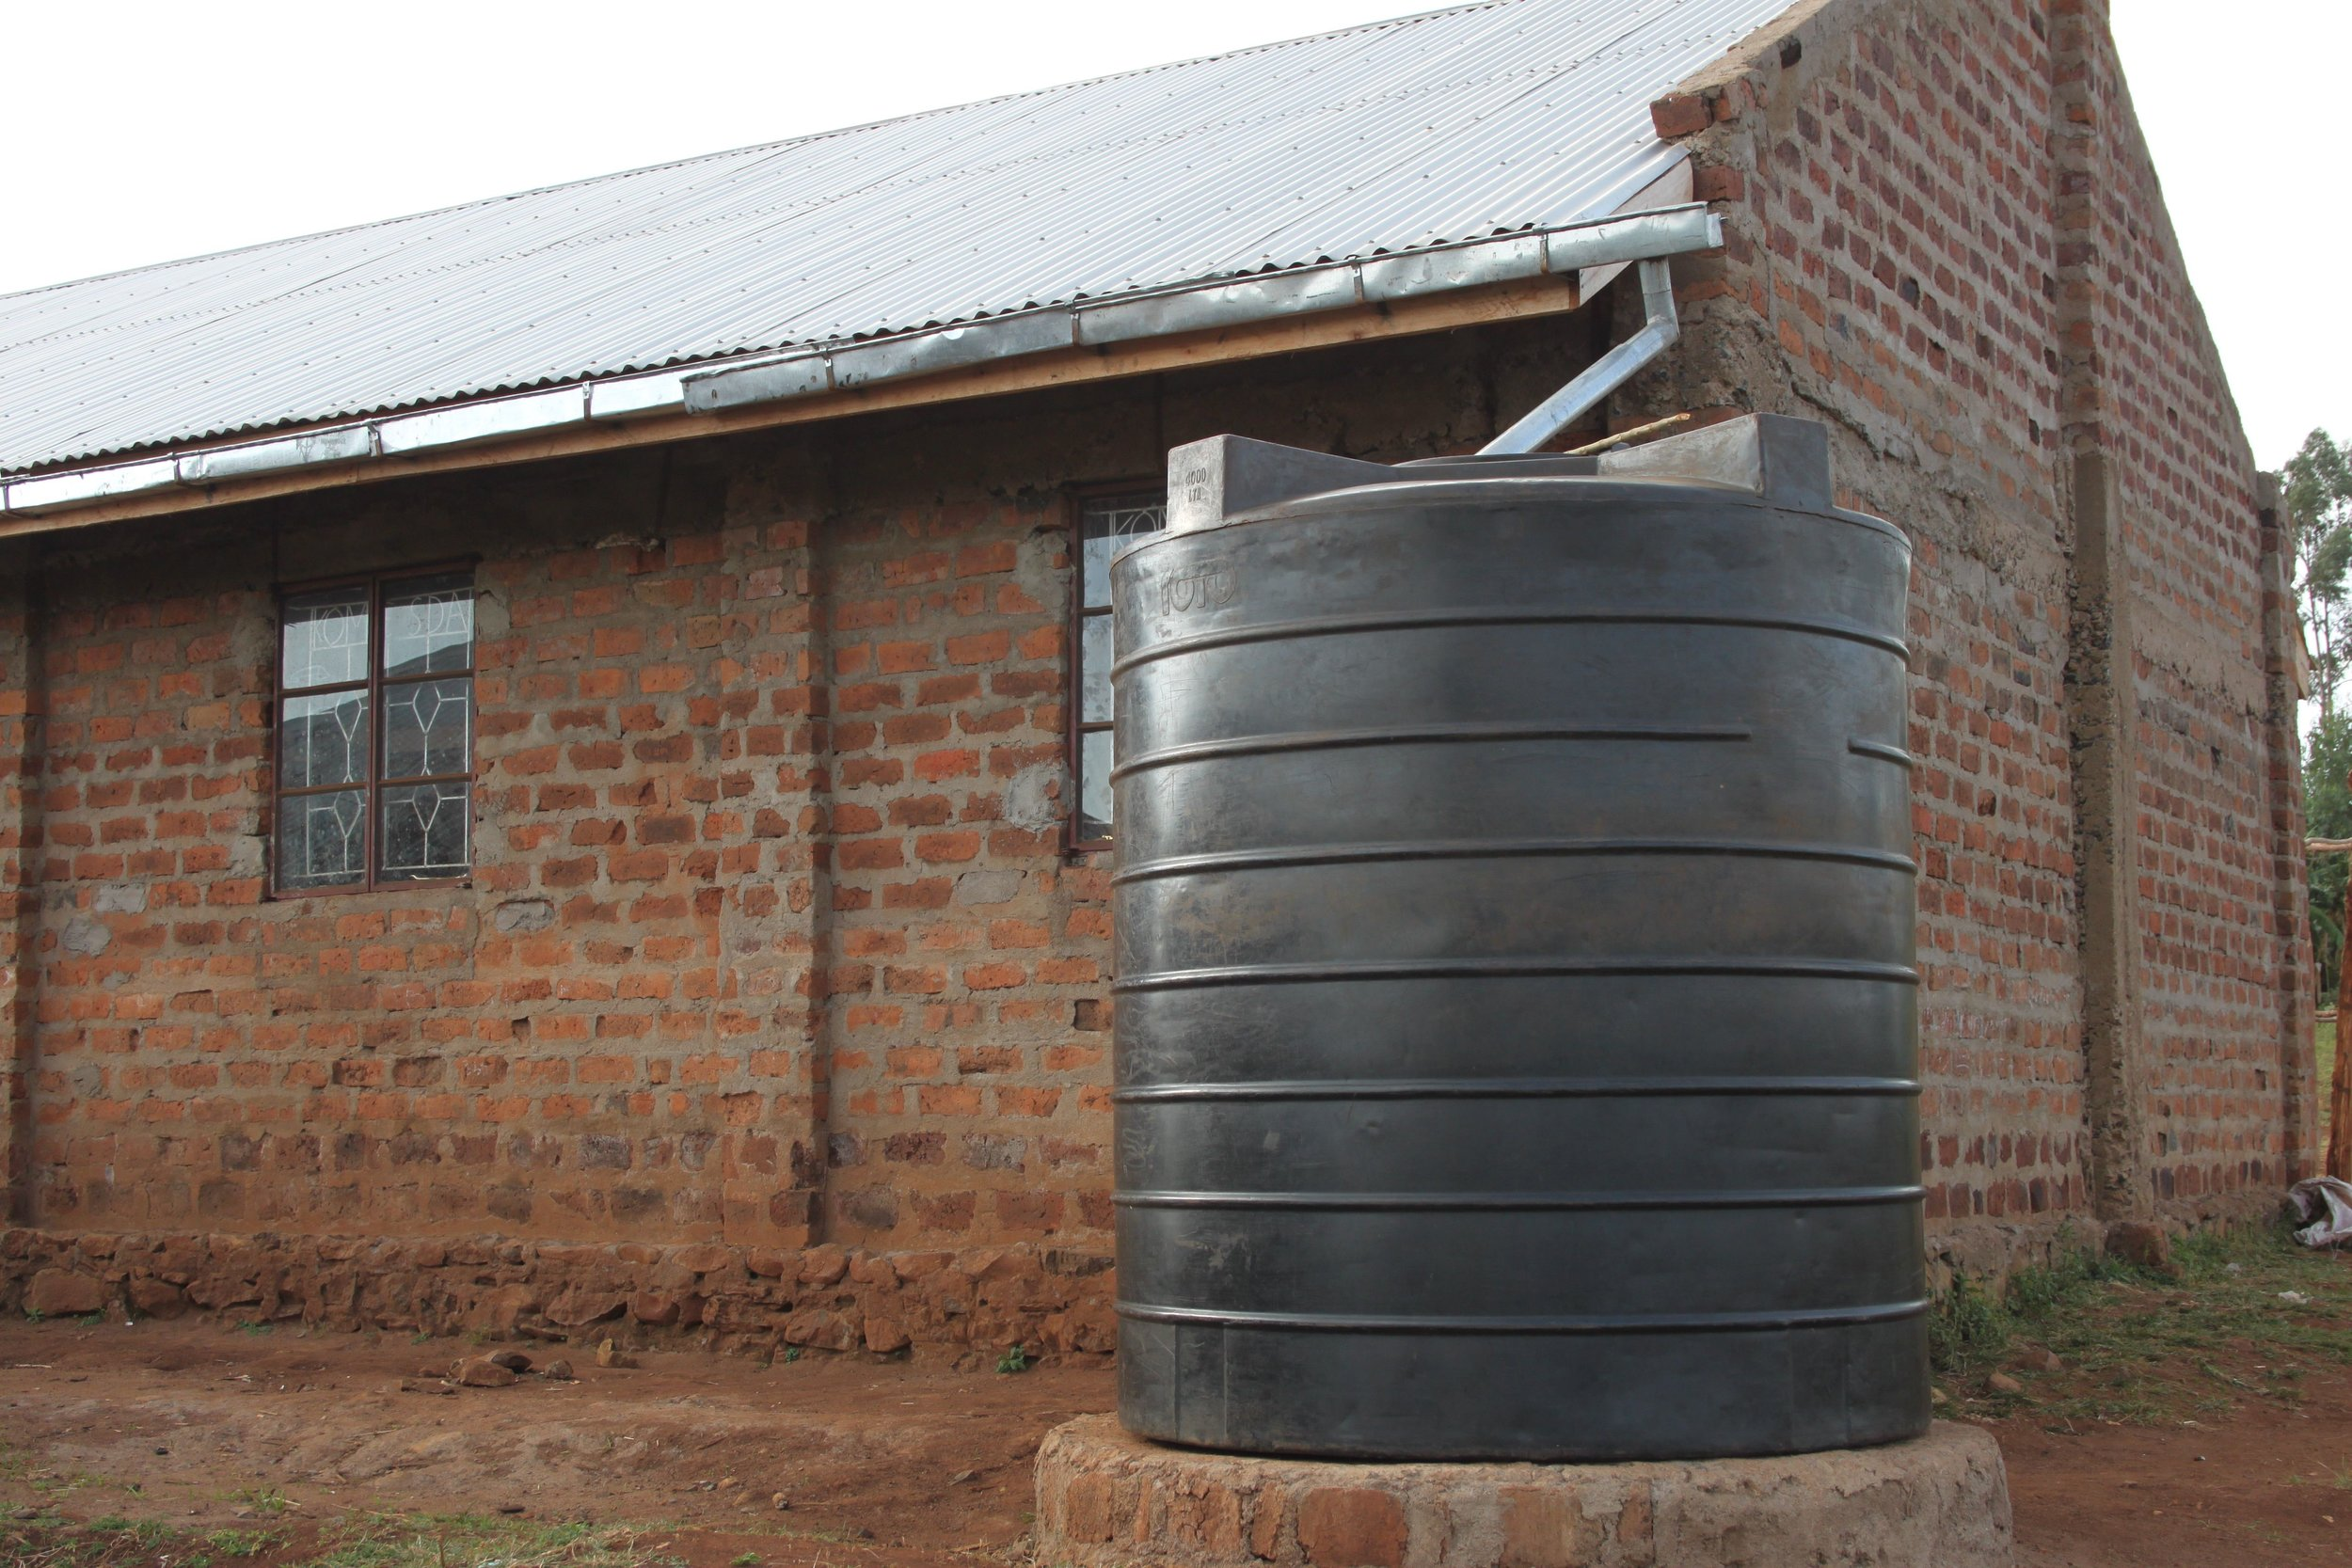 Rainwater collection and storage